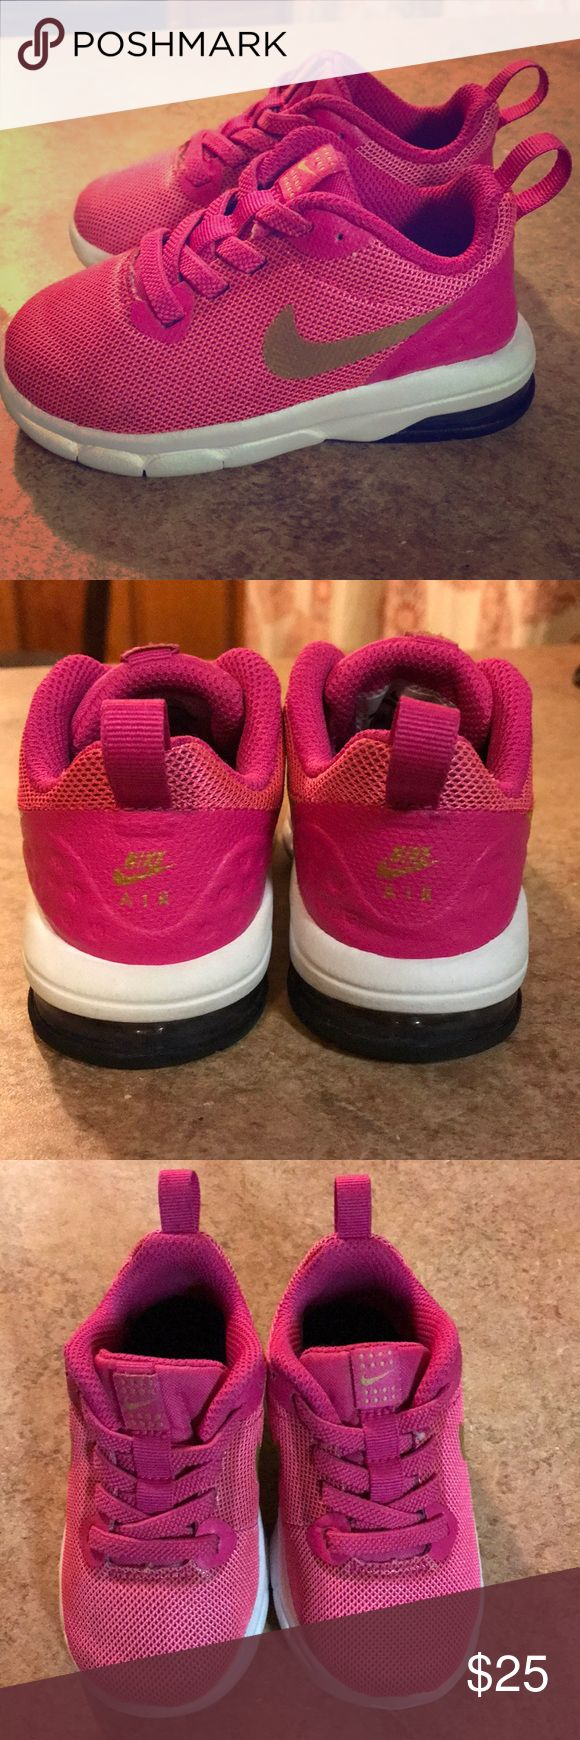 Toddler Nike Shoes Toddler girls, worn a few times. Nike Shoes Sneakers http://feedproxy.google.com/fashionshoes1